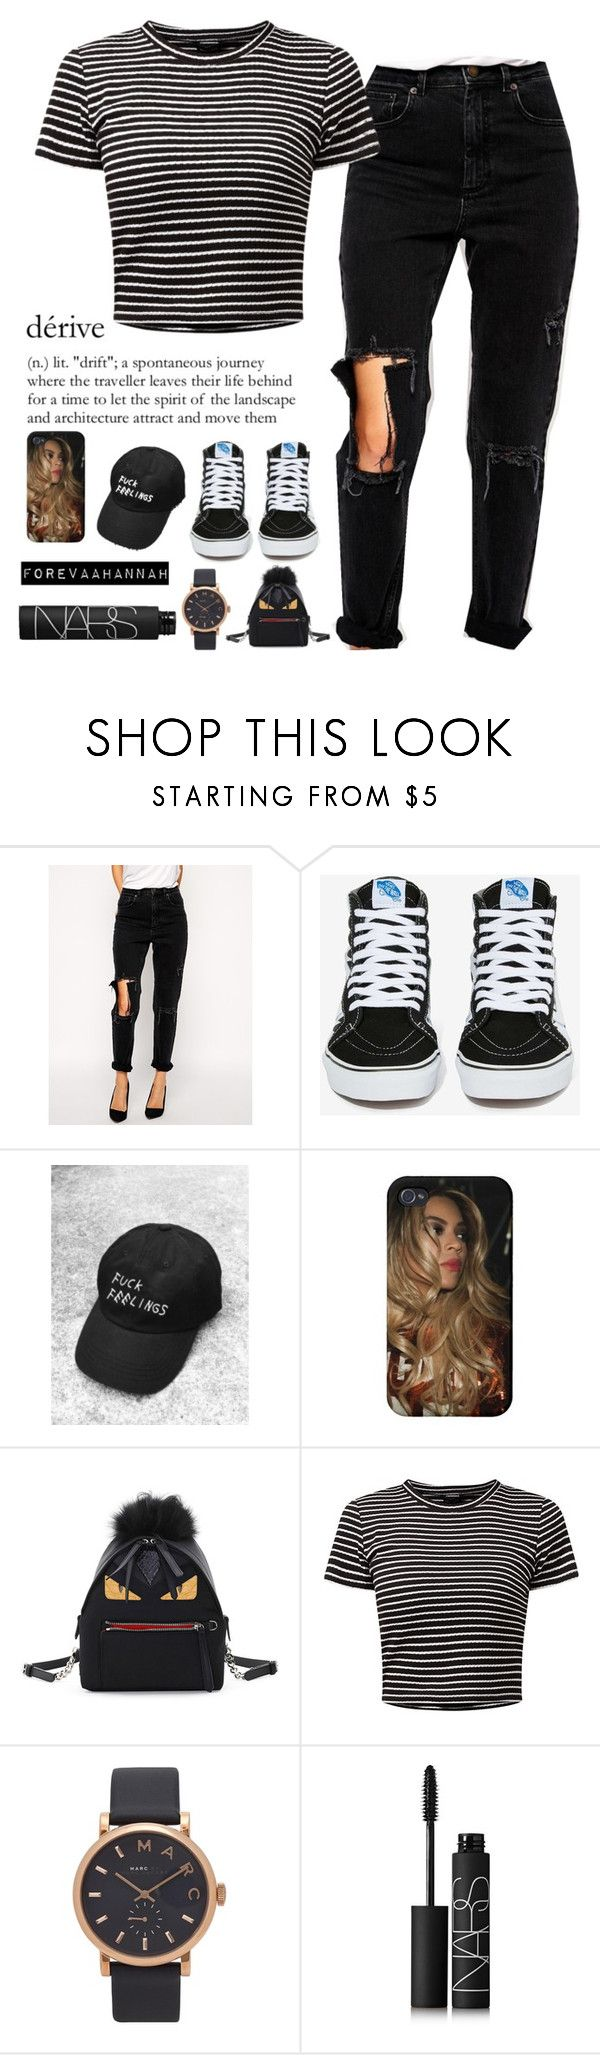 """""""Lil Yacthy-Broccoli"""" by forevaahannah ❤ liked on Polyvore featuring ASOS, Vans, Fendi, Marc Jacobs and NARS Cosmetics"""